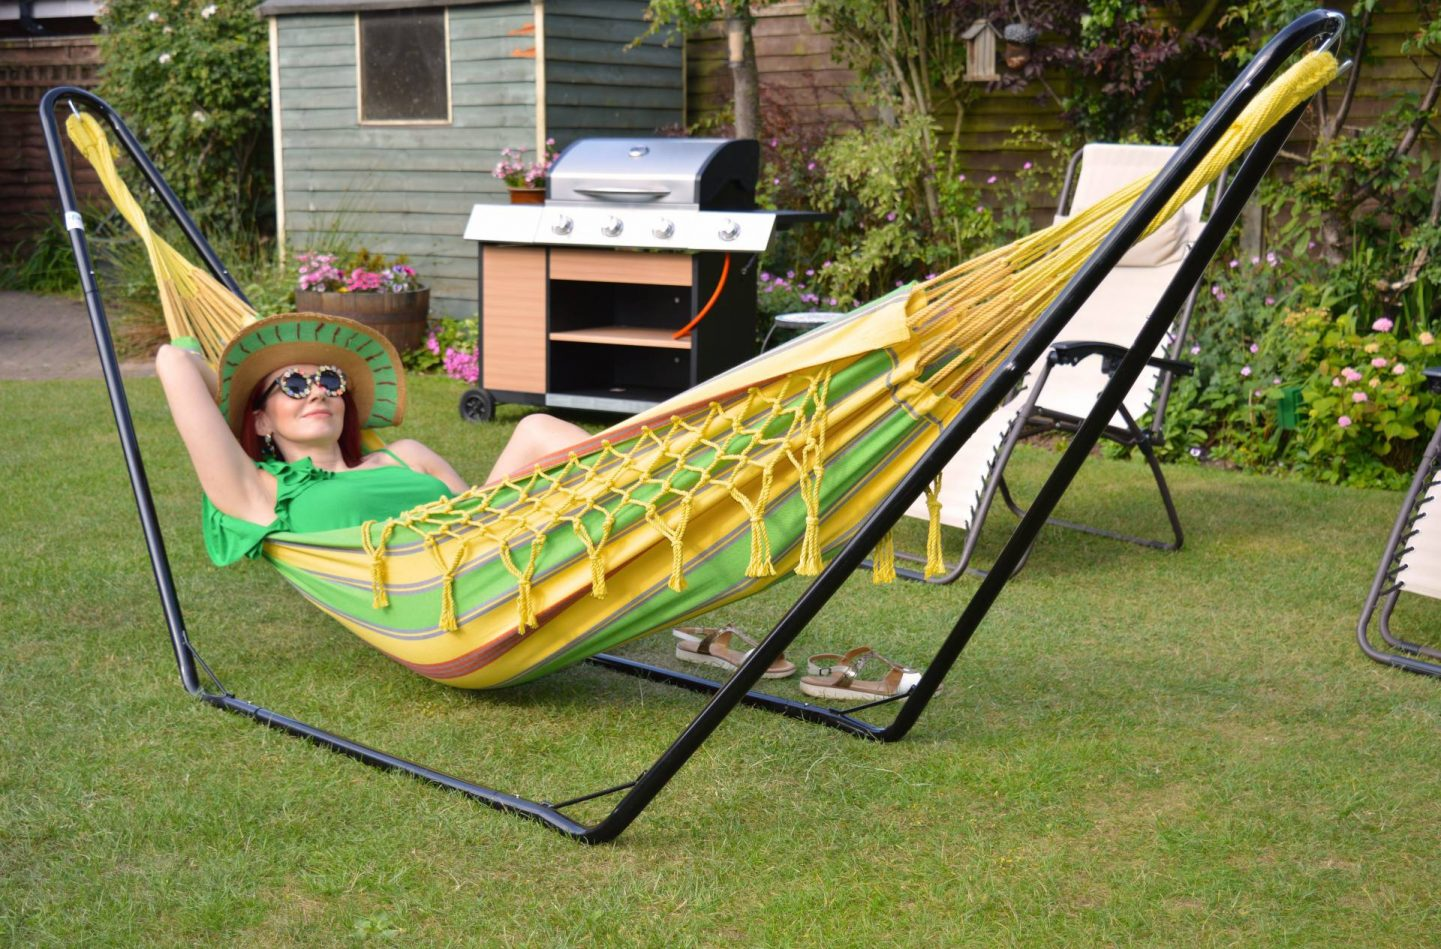 Summertime and the Livin' Is Easy - Soaking Up the Sun in a Hammock, Tropilex hammock